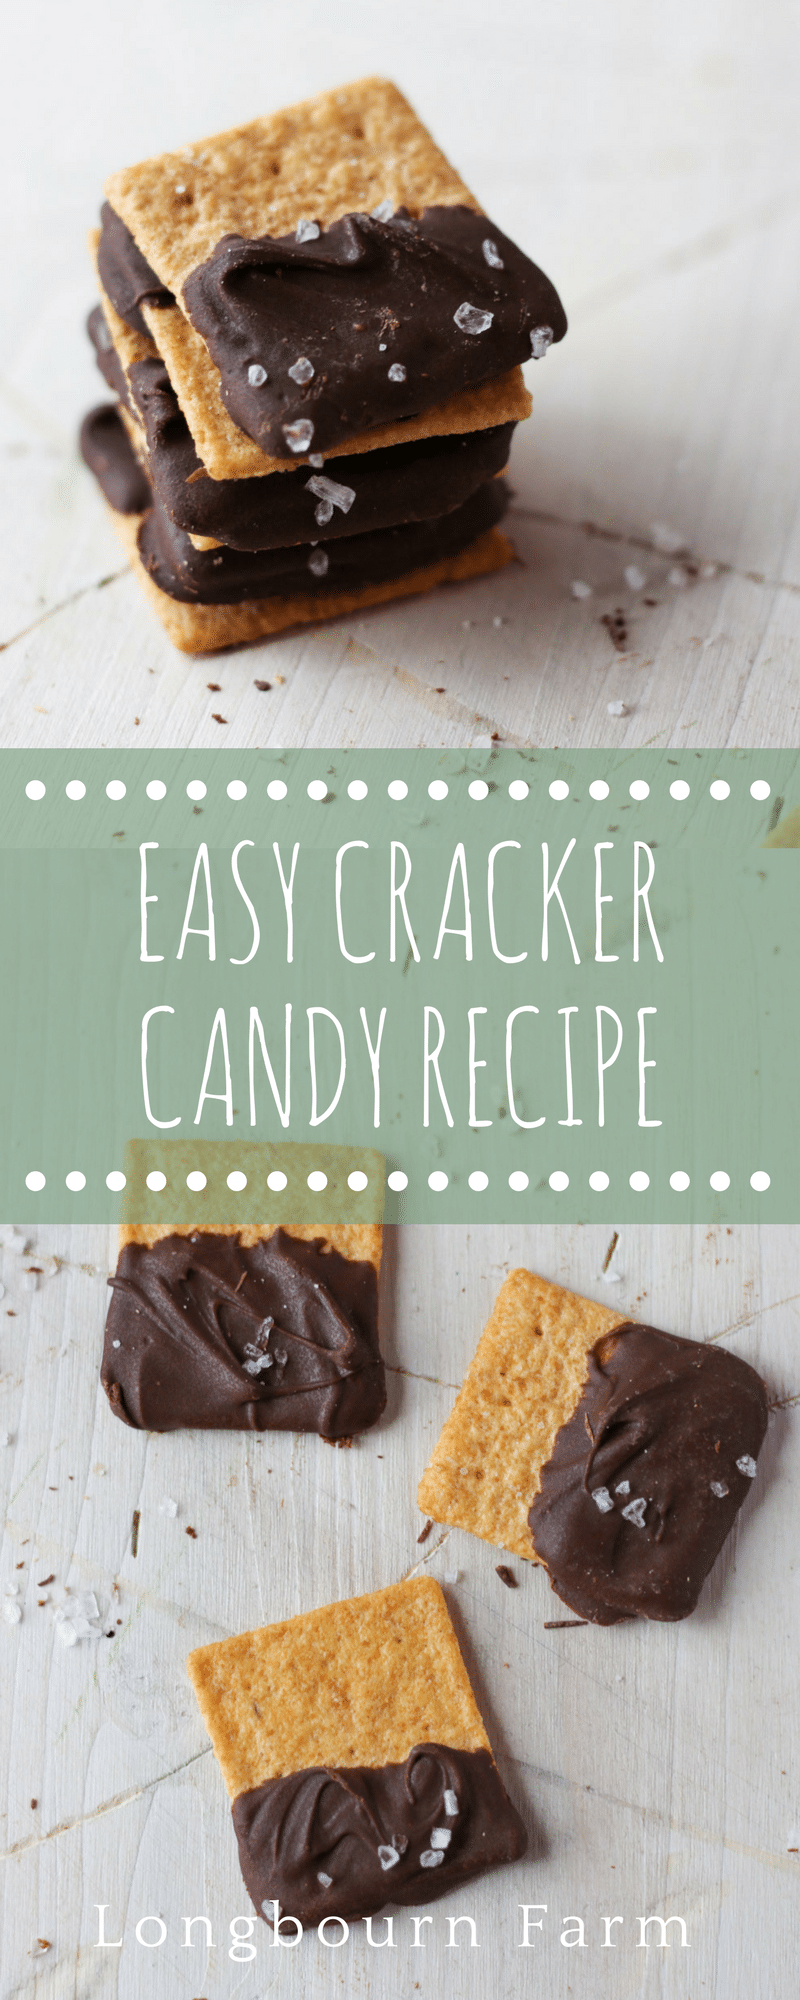 This easy cracker candy recipe is the perfect party snack, game day snack, or after lunch snack. Sweet and salty with 3 ingredients and just 5 minutes.